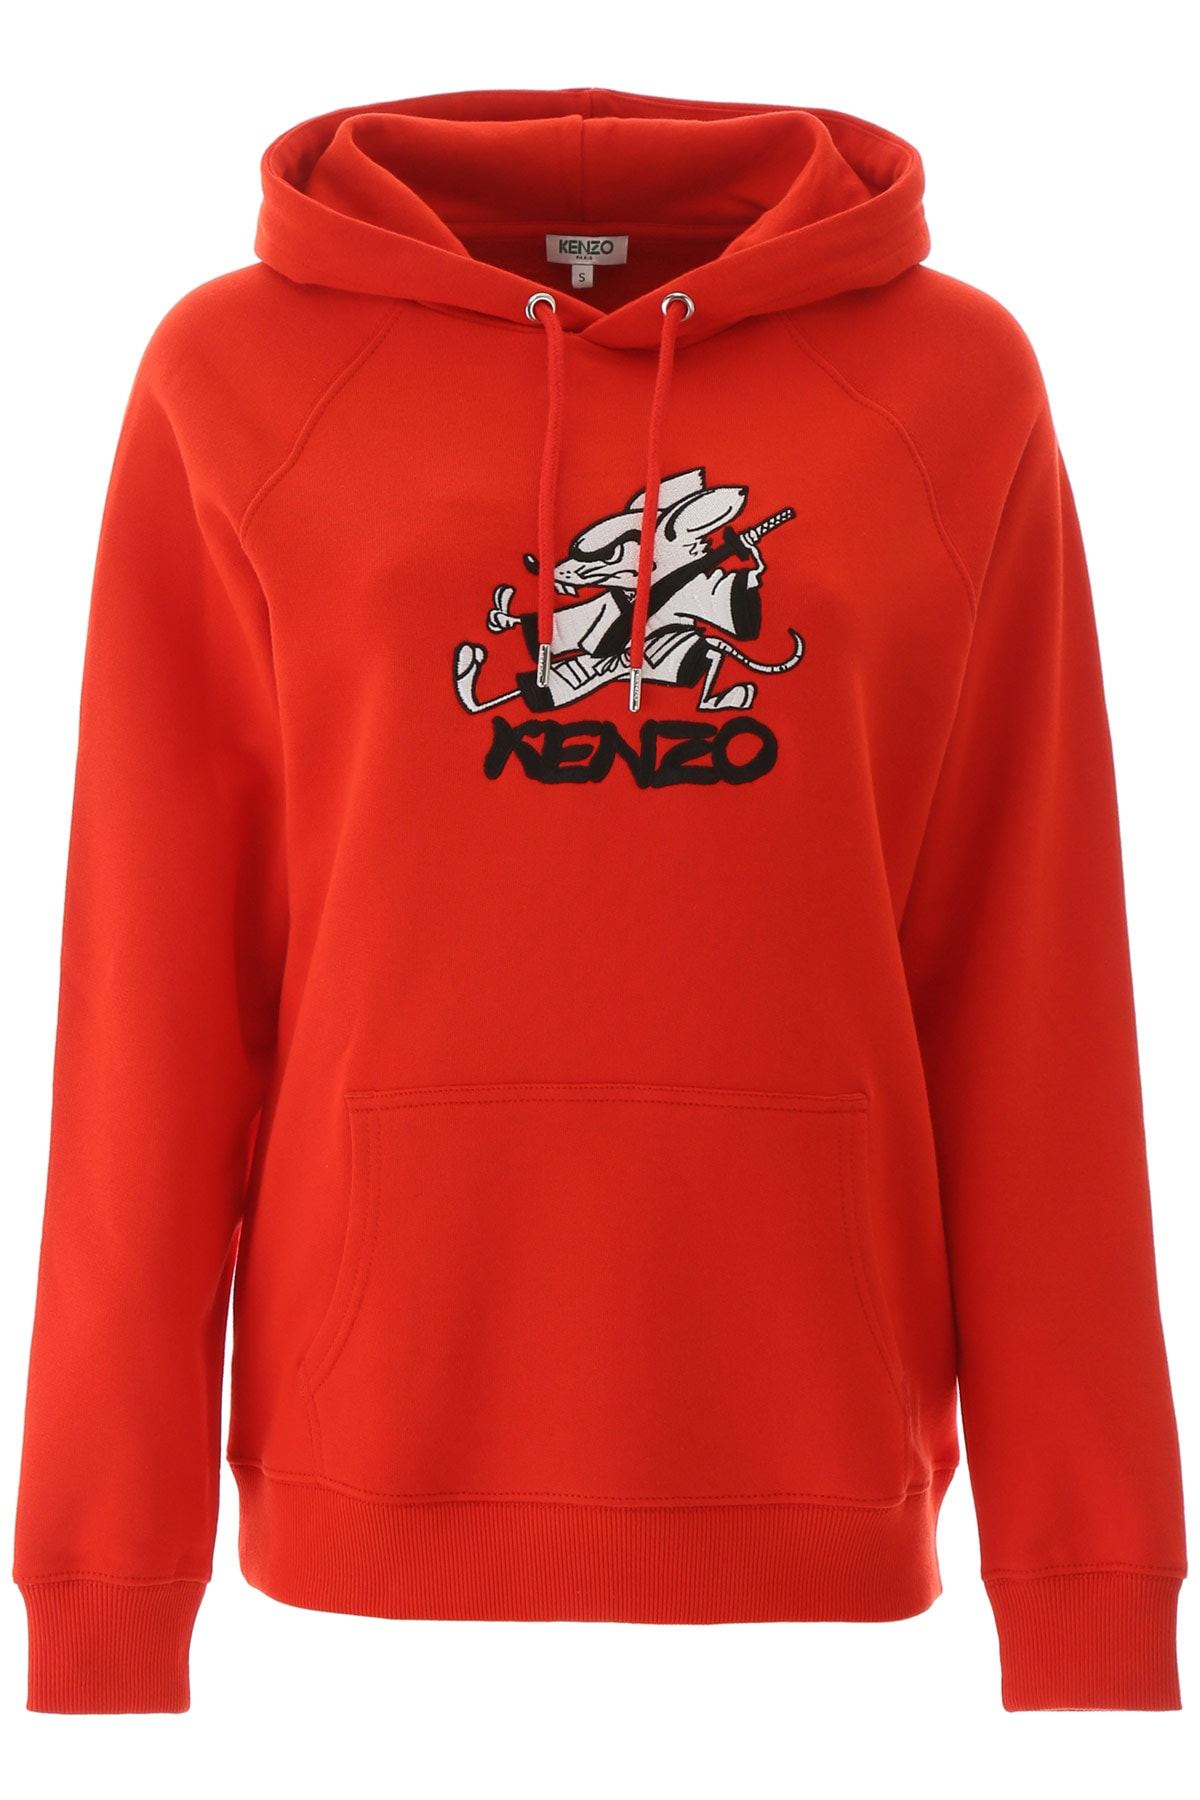 Kenzo oversized sweatshirt in cotton jersey, personalized with logo and Rat graphic print embroidered on the front, dedicated to the Chinese New Year 2020. It features drawstring hood, kangaroo pocket, ribbed cuffs and hem. The model is 177 cm tall and wears a size S. Composition: 100% cotone